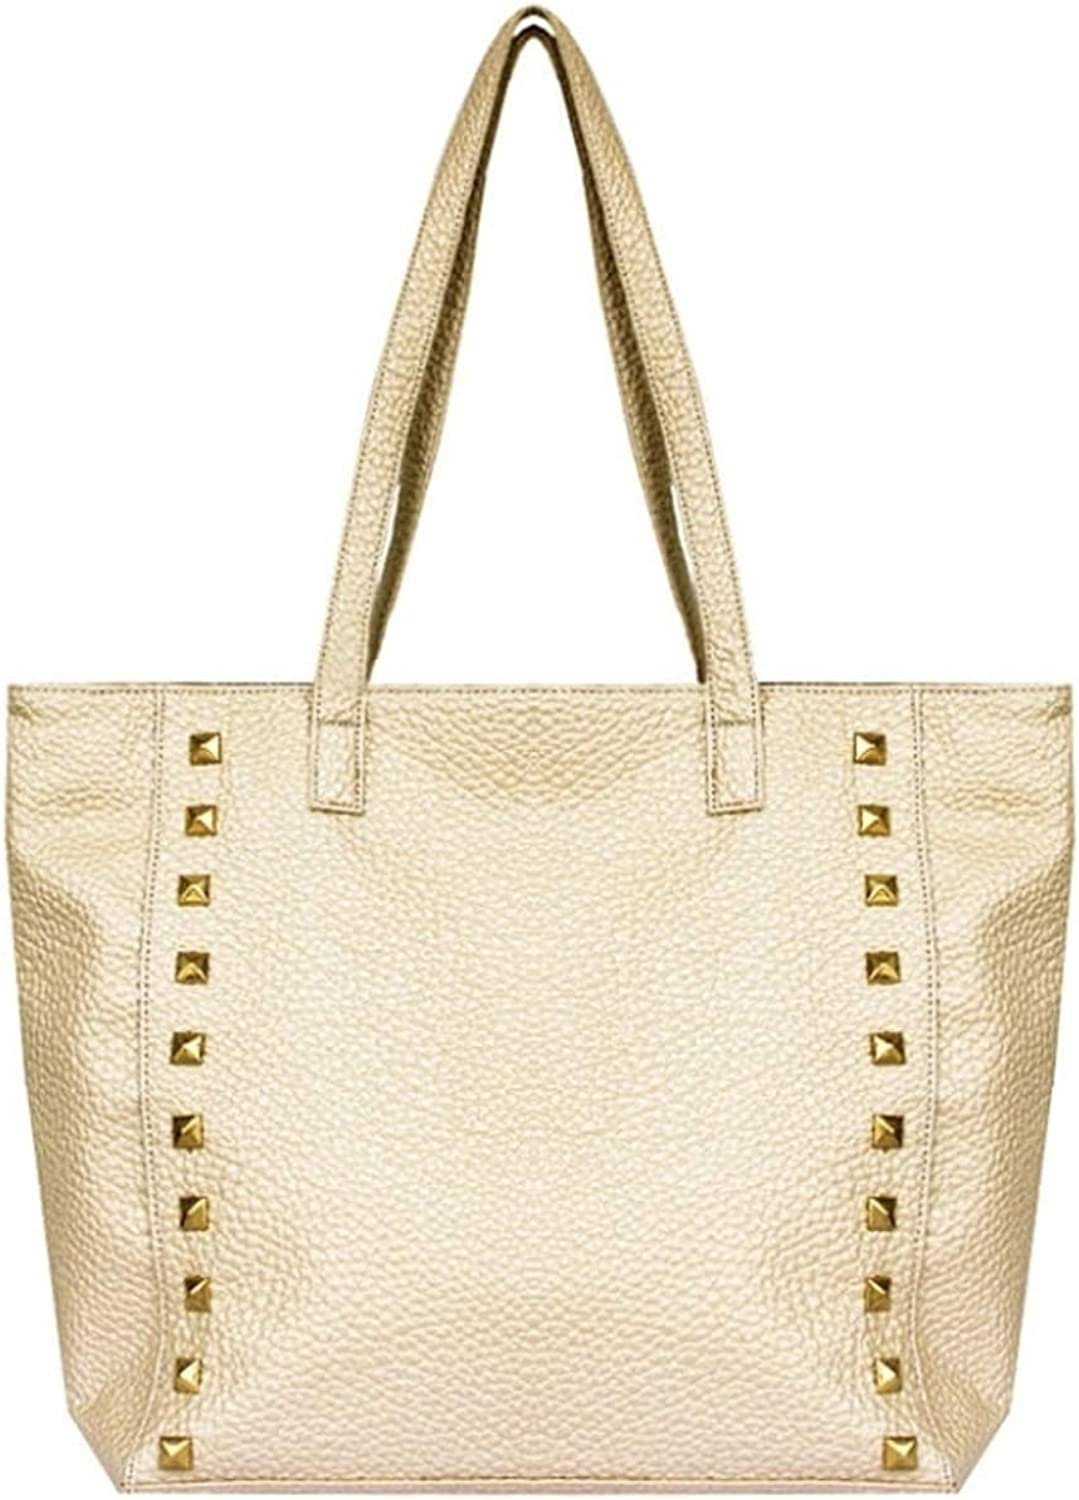 Plum Women's gold Tote Shoulder Bag - Belen